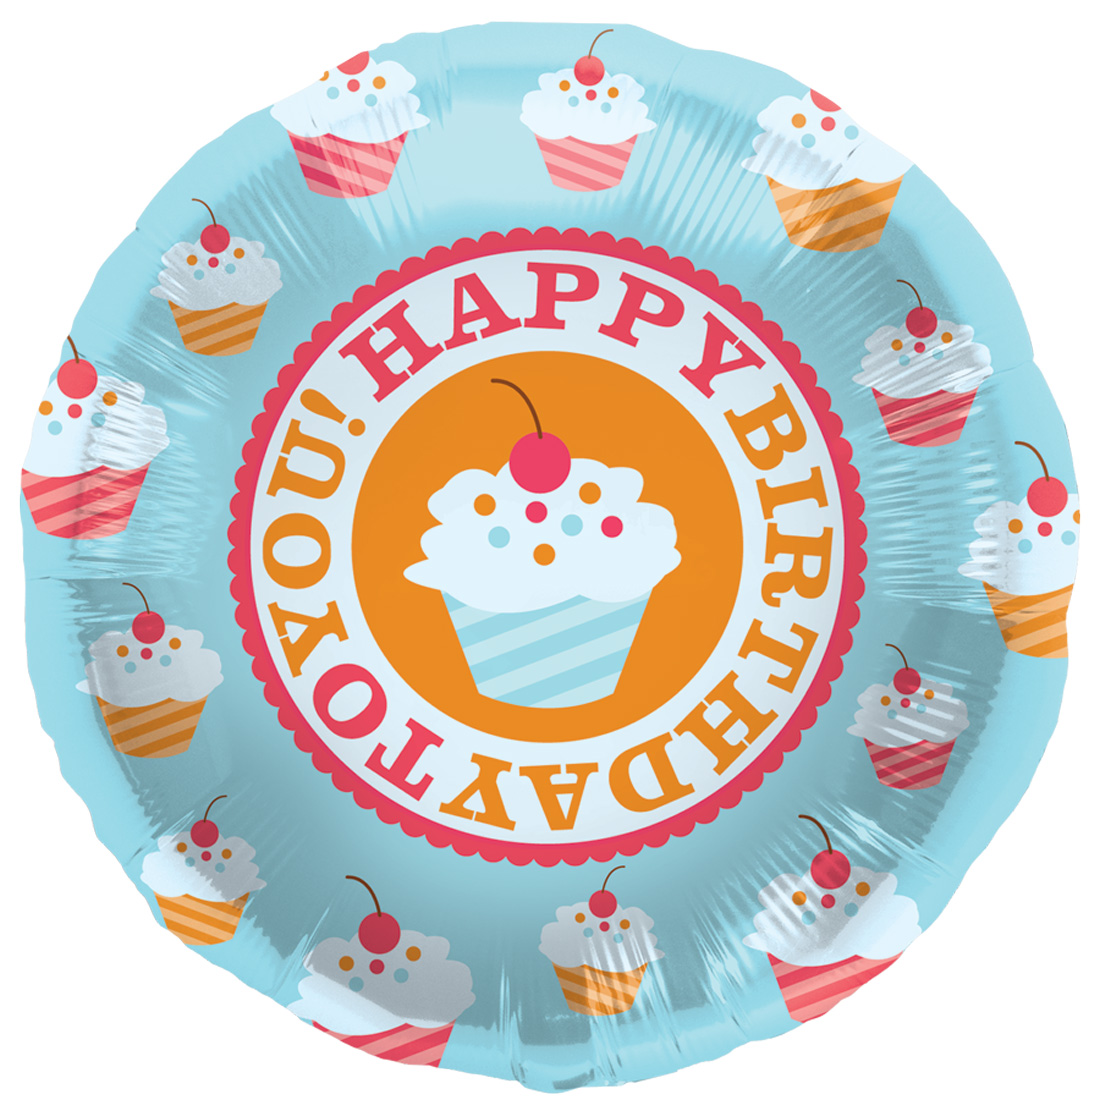 "Northstar Happy Birthday to You Cupcakes 18"" Foil Balloon, Blue Orange"